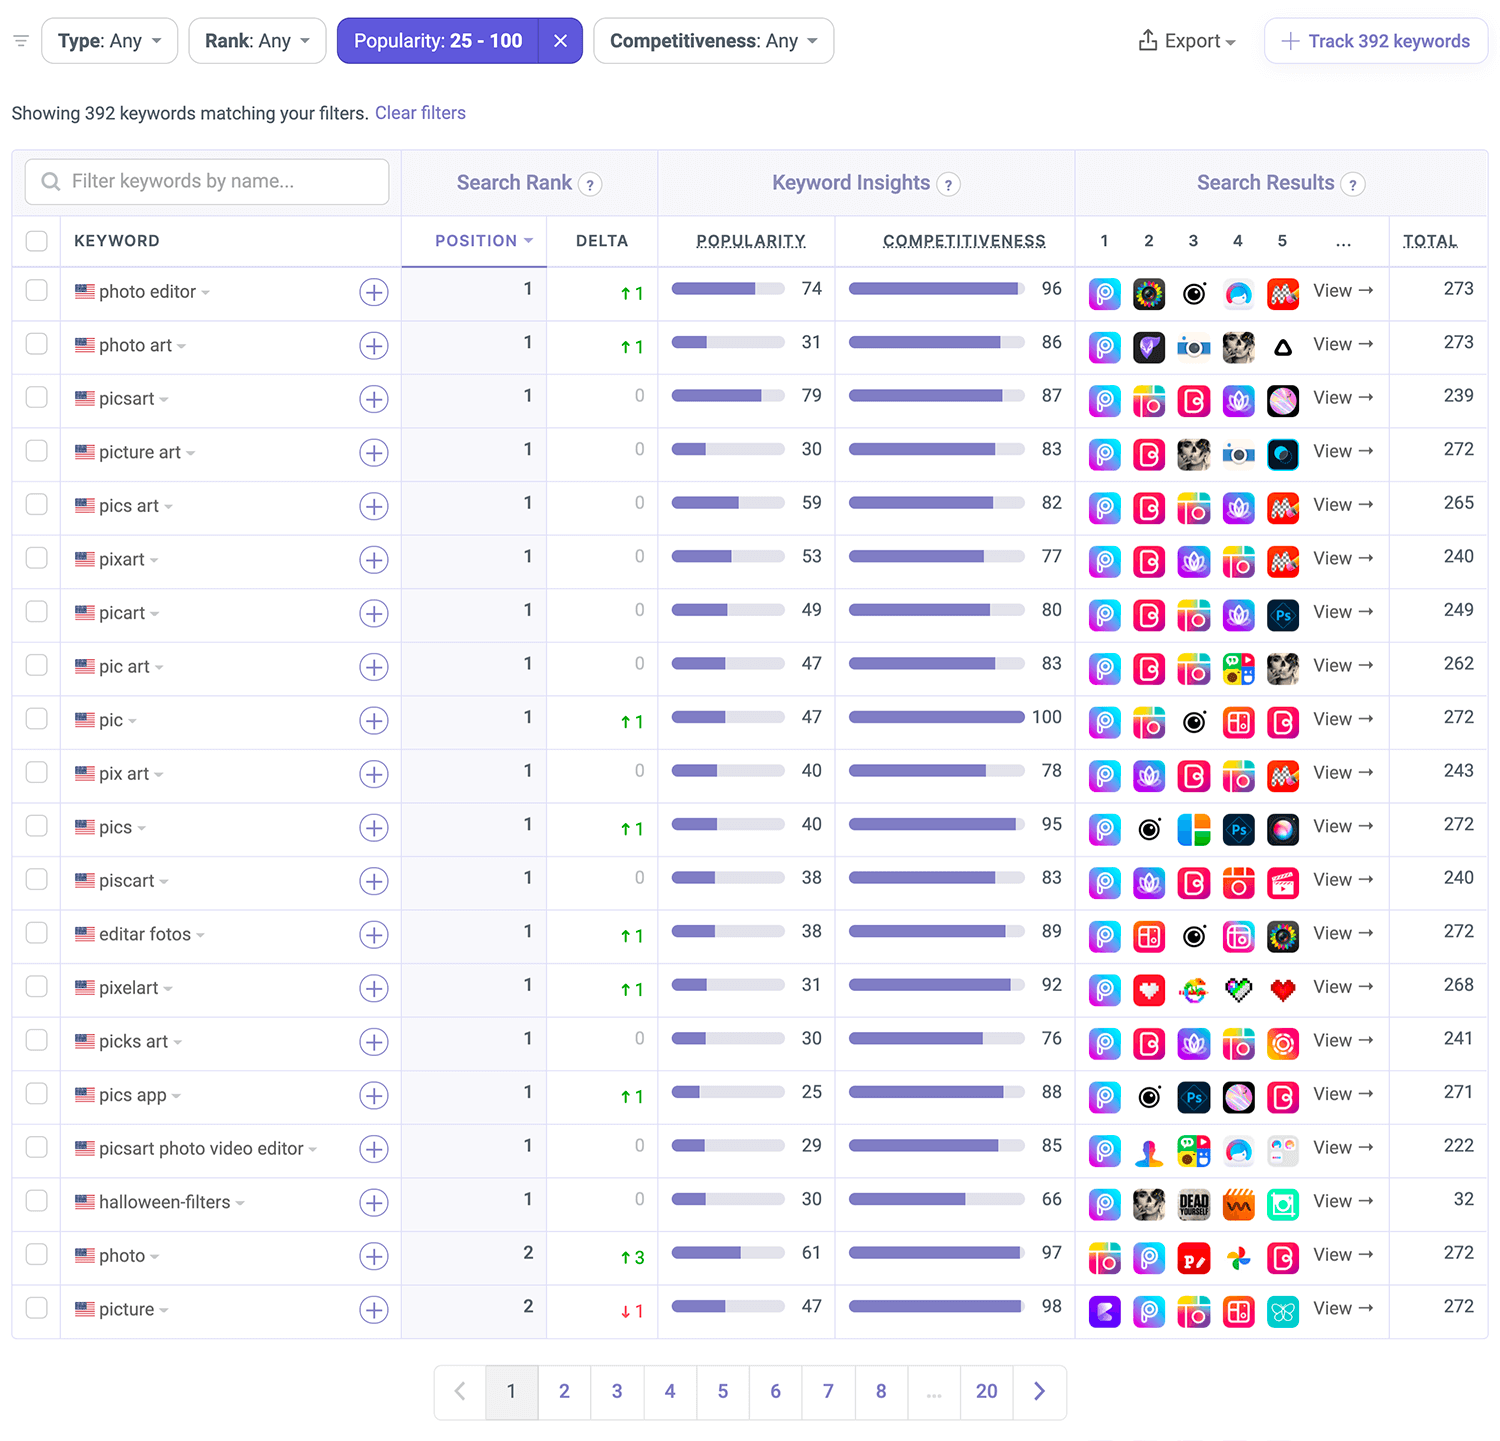 PicsArt is ranked on the App Store by Appfigures